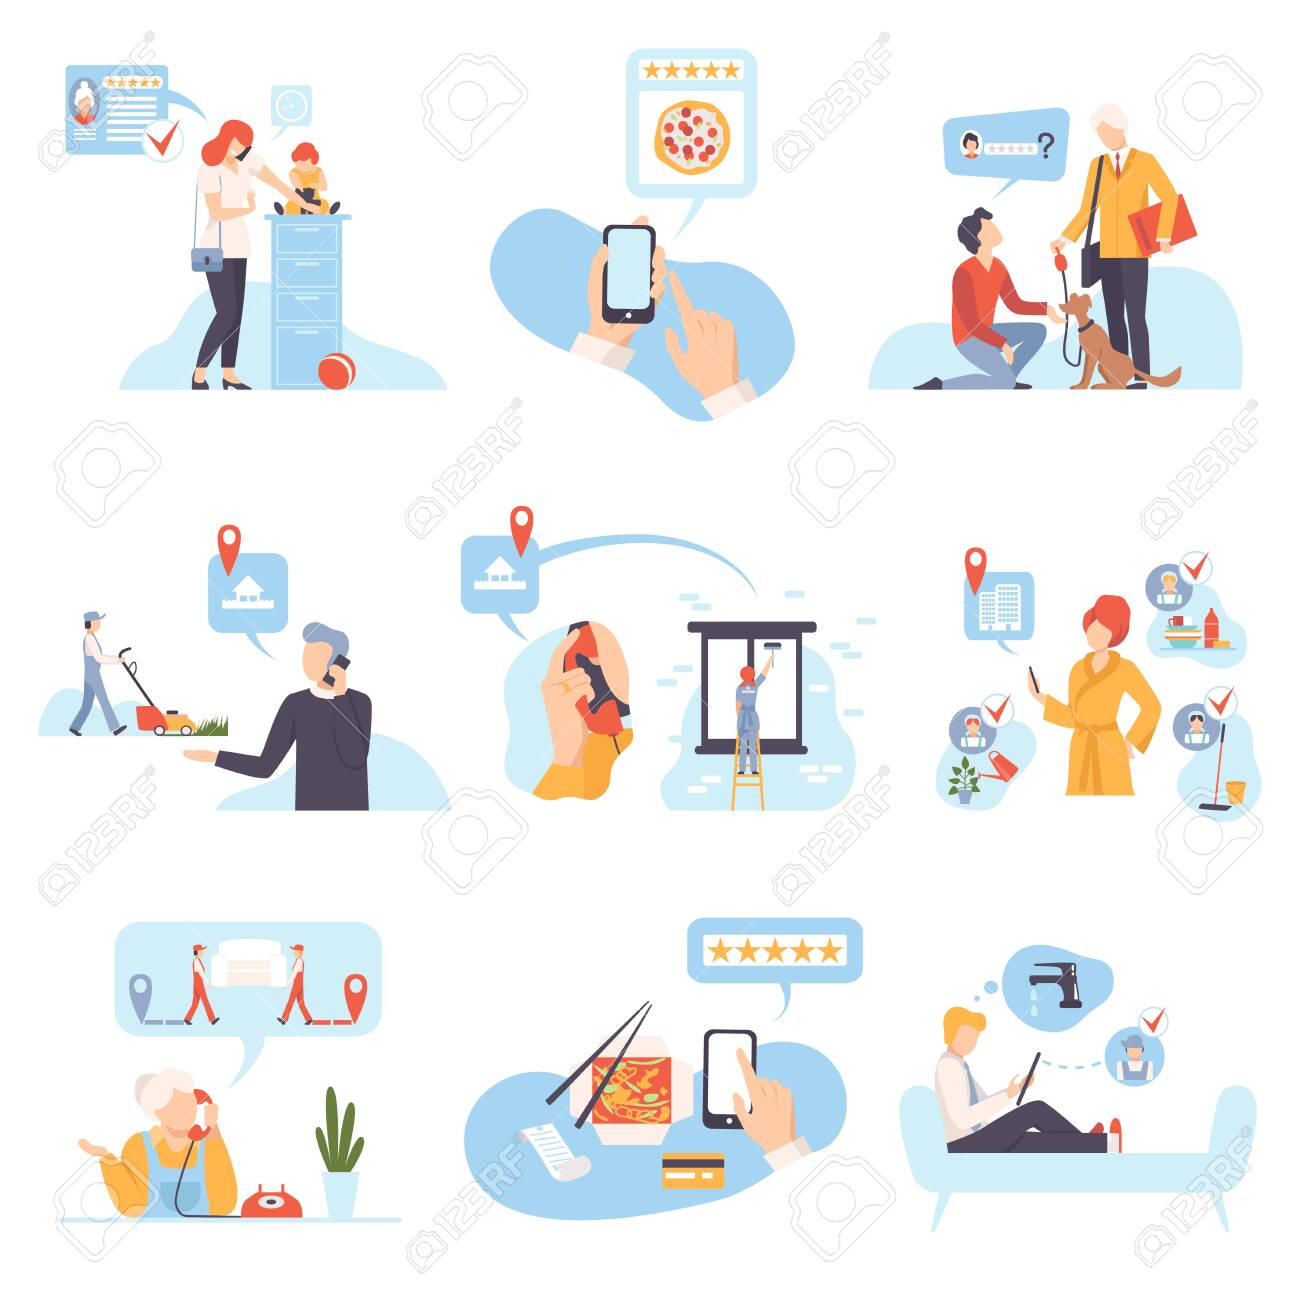 Characters in different situations vector illustration on White Background. - 131550439